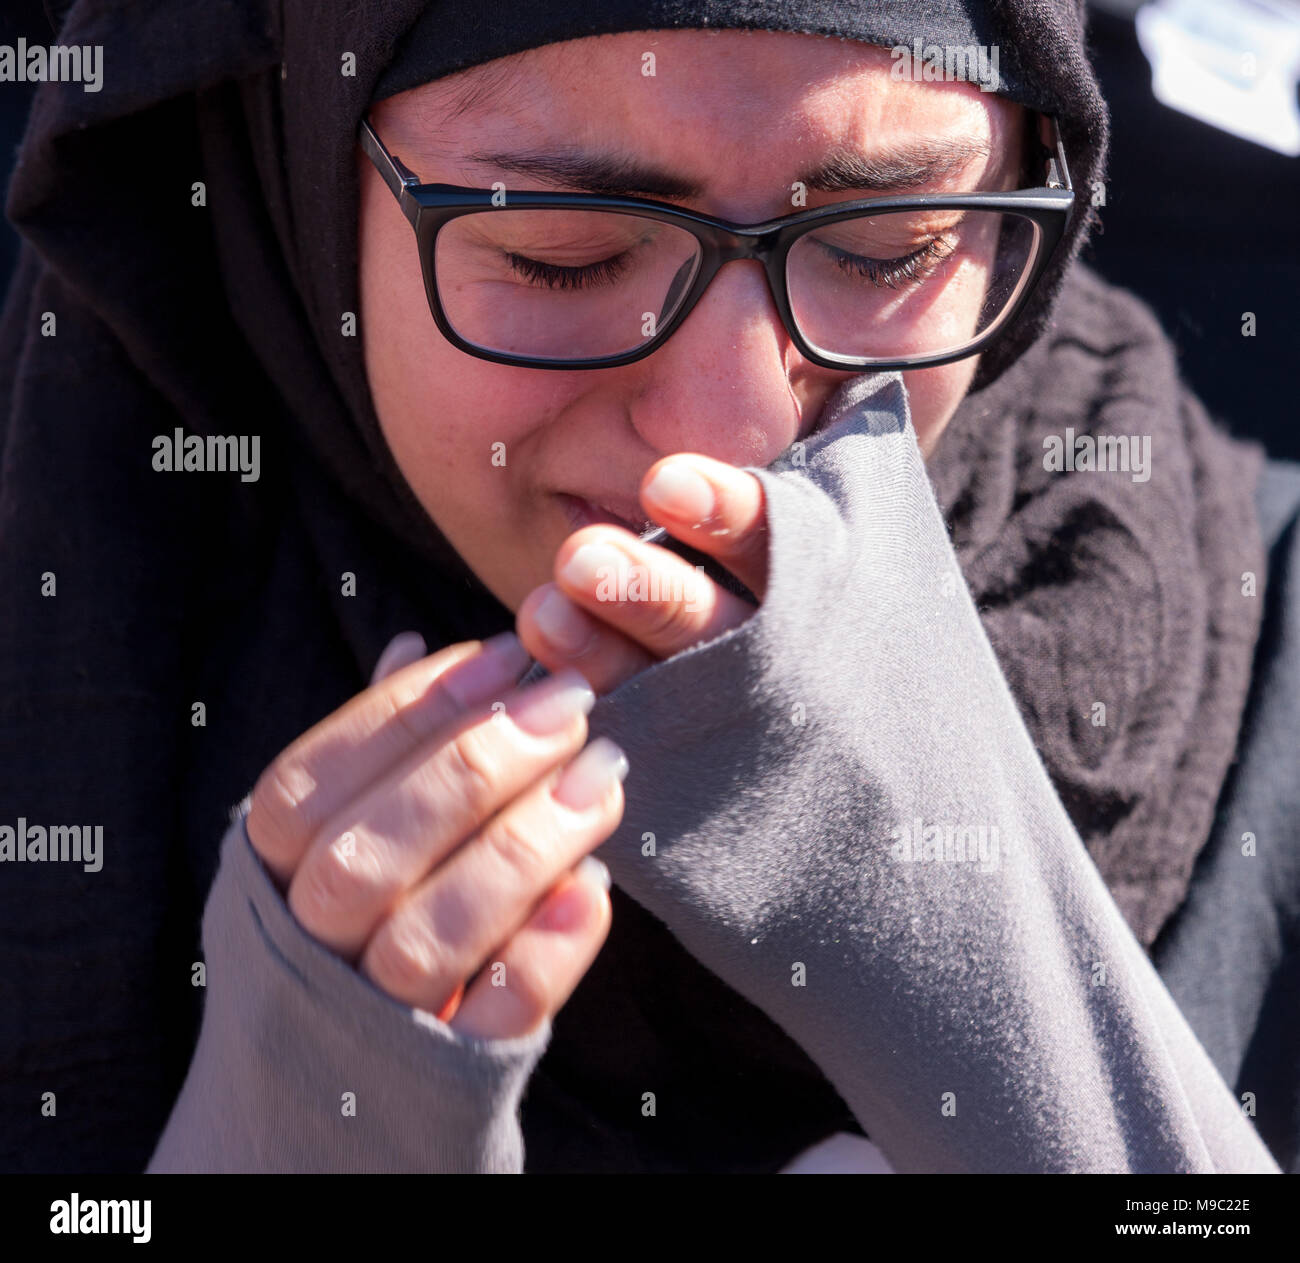 Denver Shooting March 24th: Stoneman Stock Photos & Stoneman Stock Images